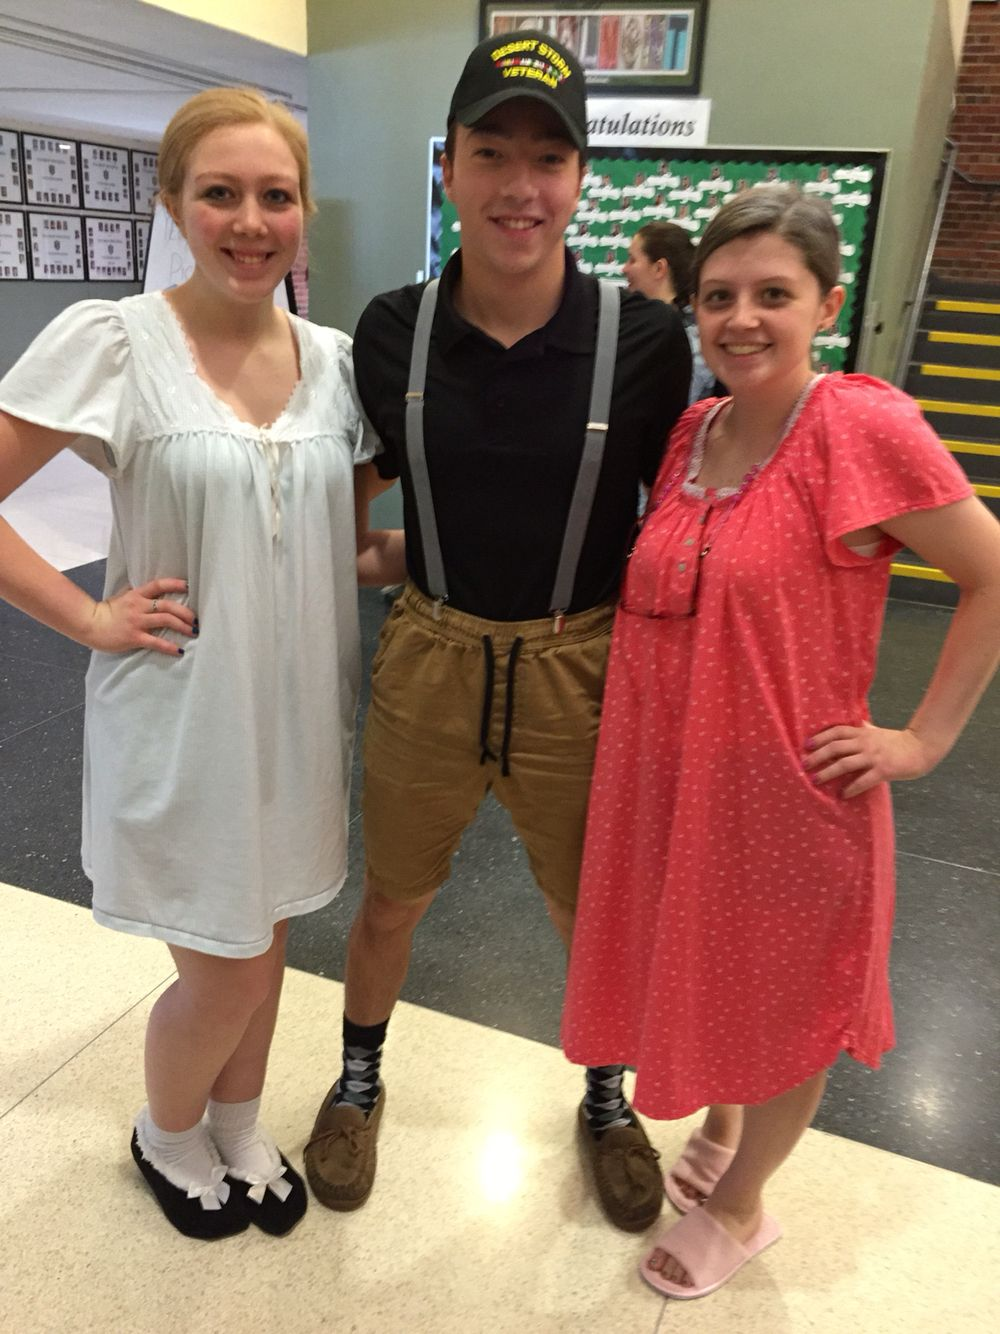 Senior Citizen Costume Senior Citizen Costume Spirit Week Outfits Dress Up Day